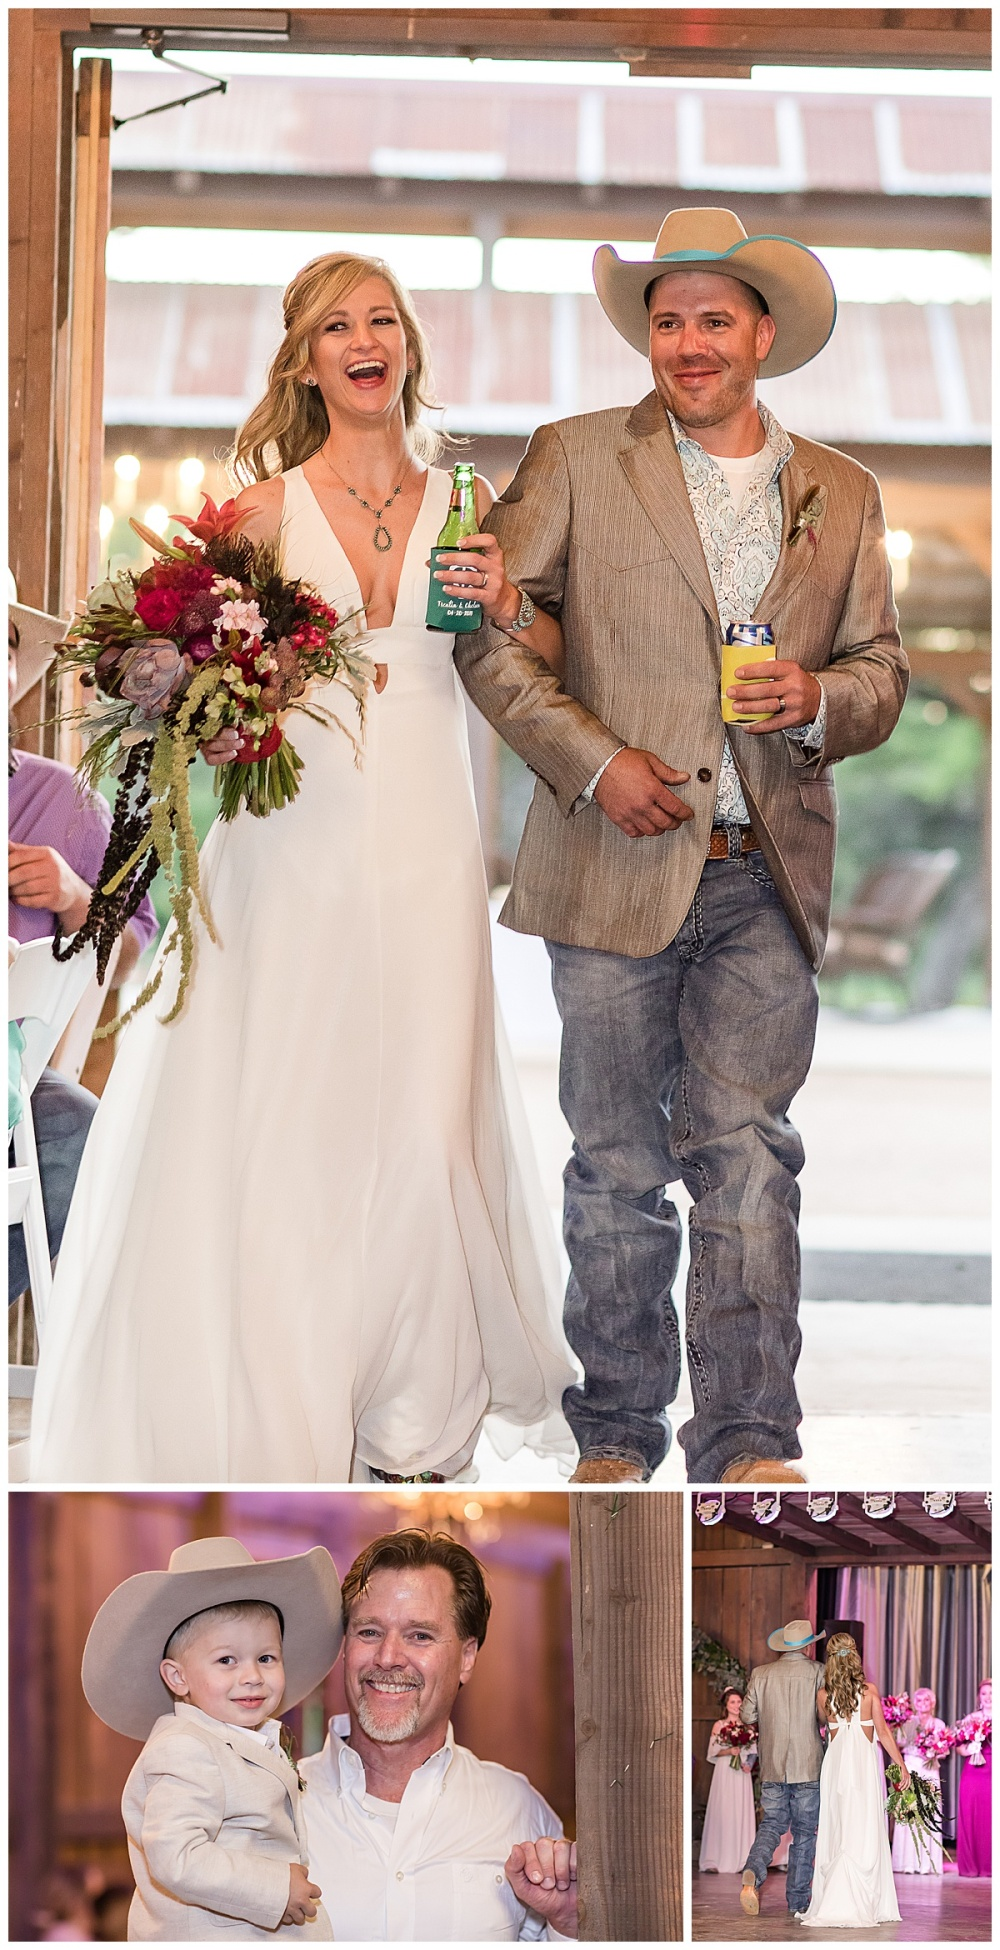 Eagle-Dancer-Ranch-Boerne-Texas-Wedding-Party-Barn-Carly-Barton-Photography_0050.jpg